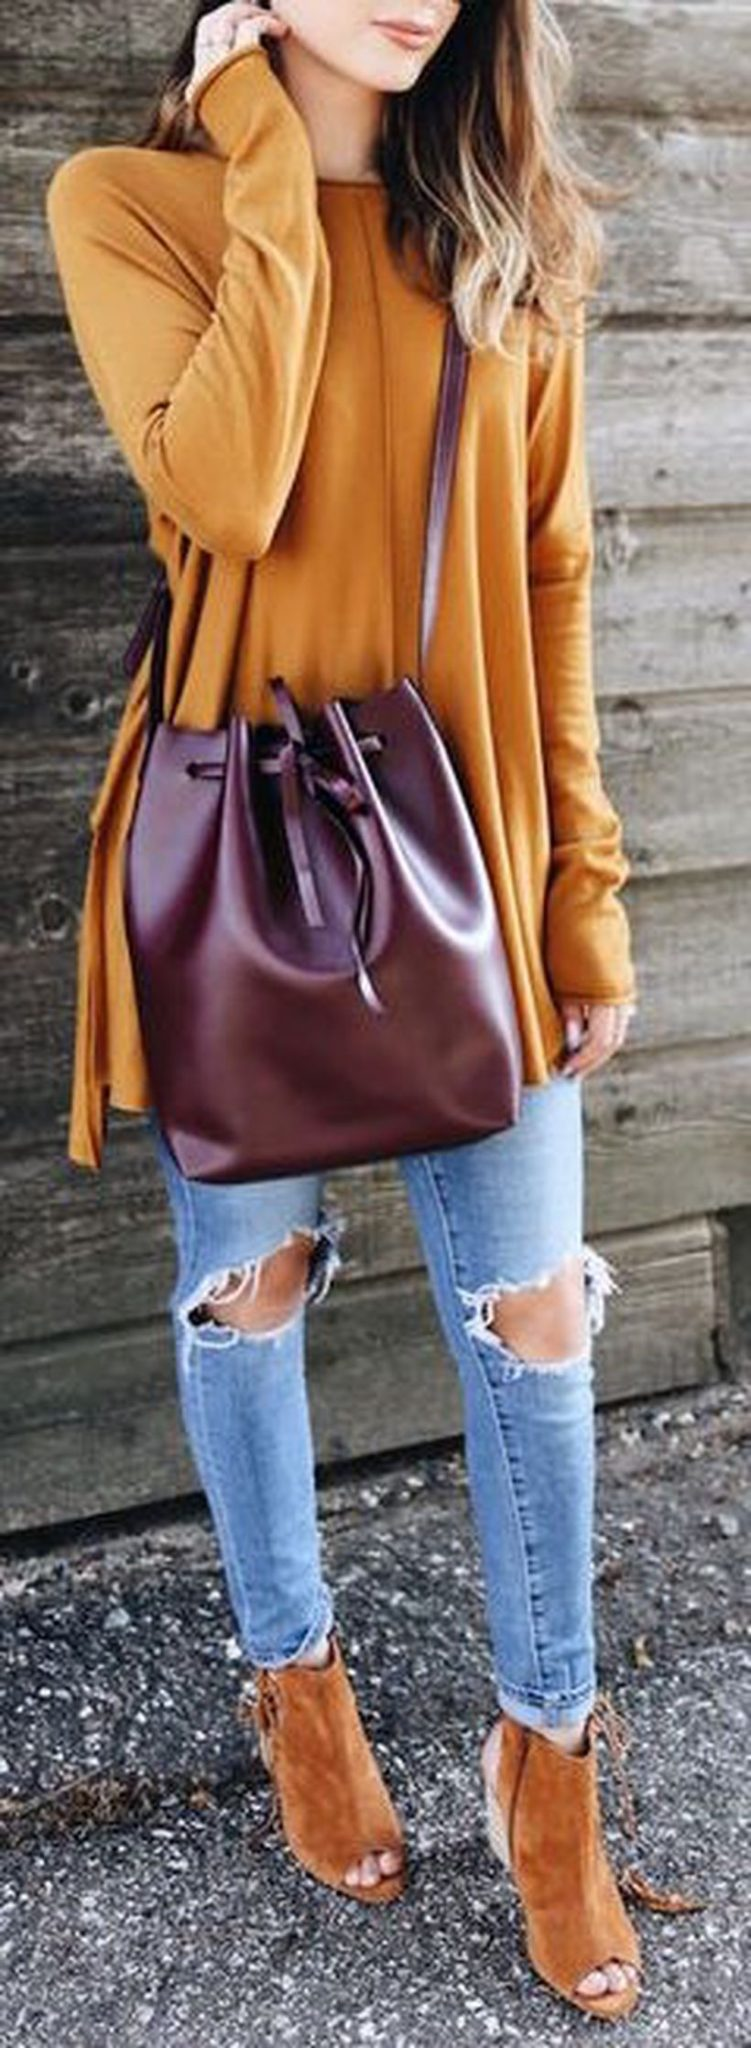 Casual fall fashions trend inspirations 2017 74